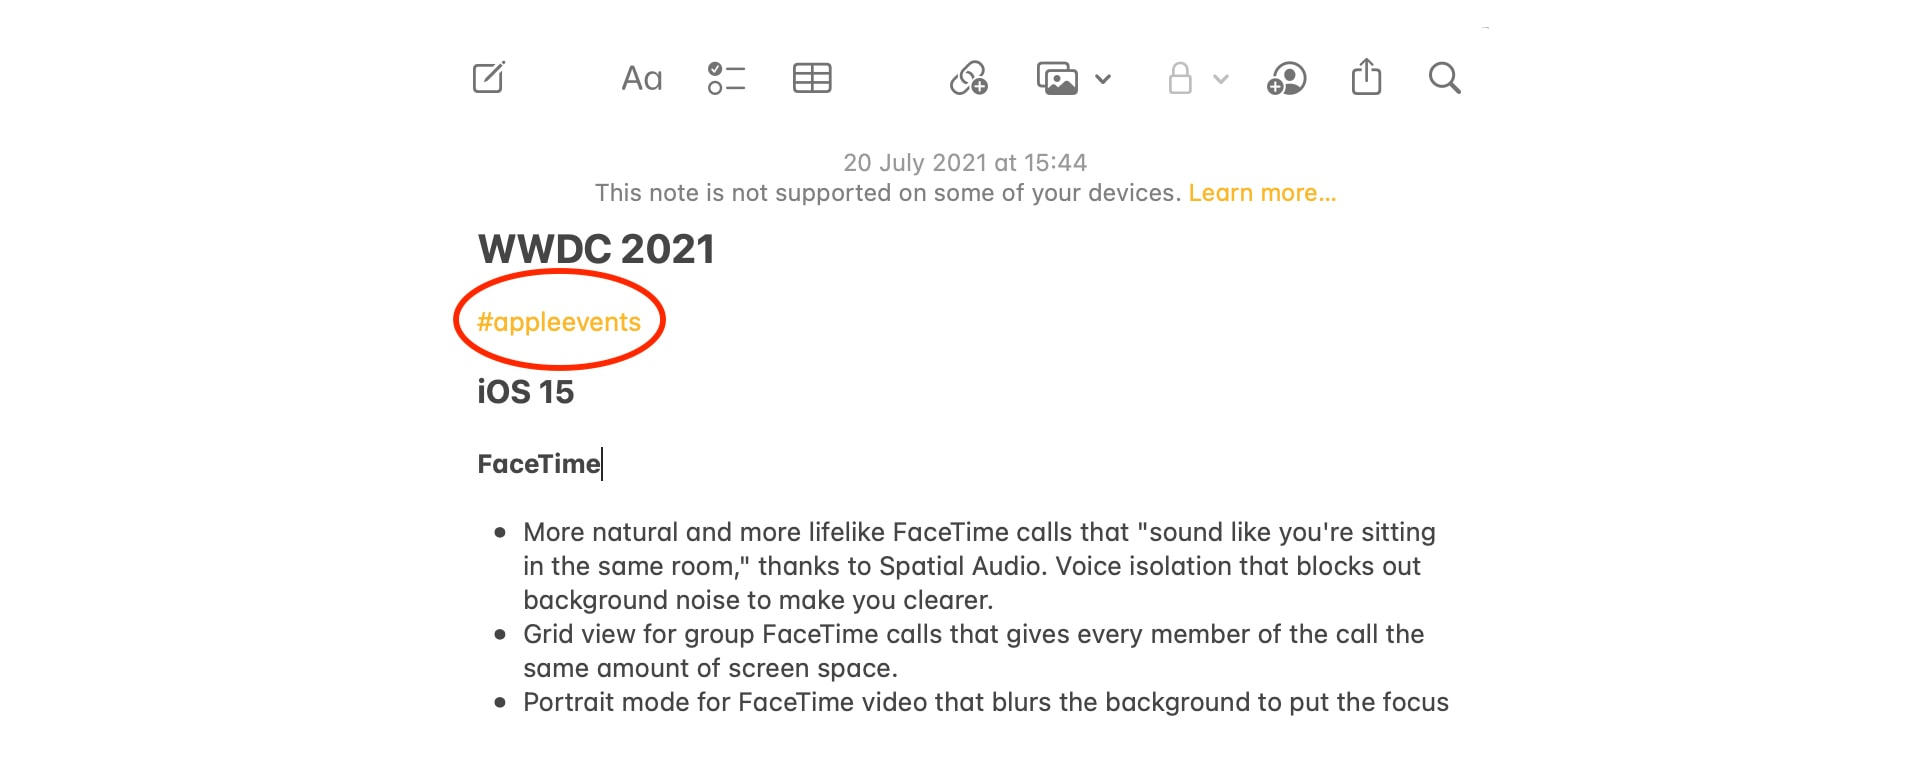 Use Notes in iOS and iPadOS 15 and macOS Monterey